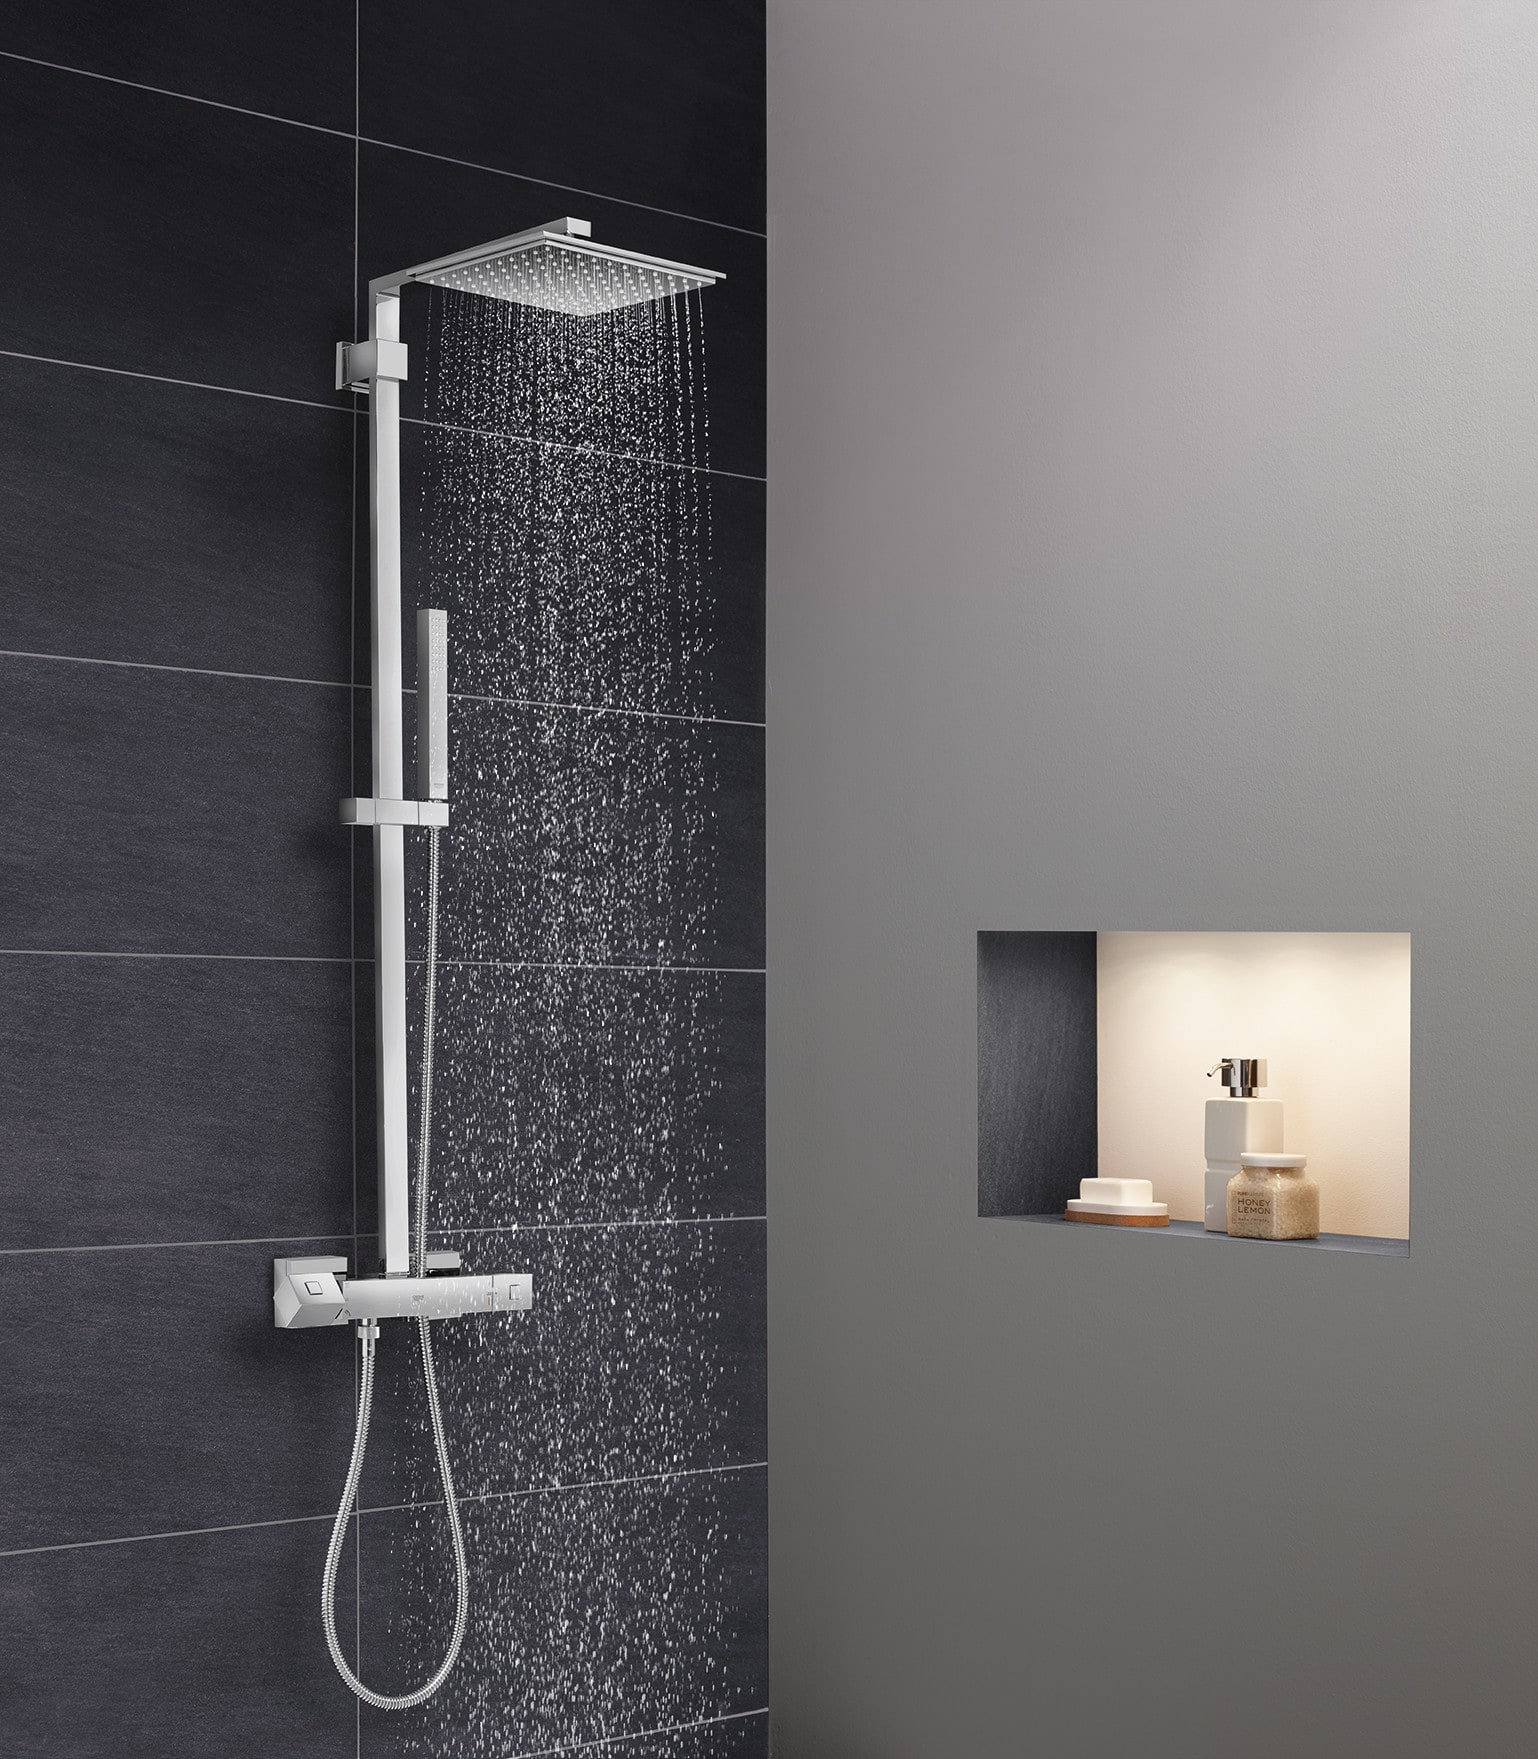 Grohe 26420000 Starlight Chrome Euphoria Cube Double Handle ...